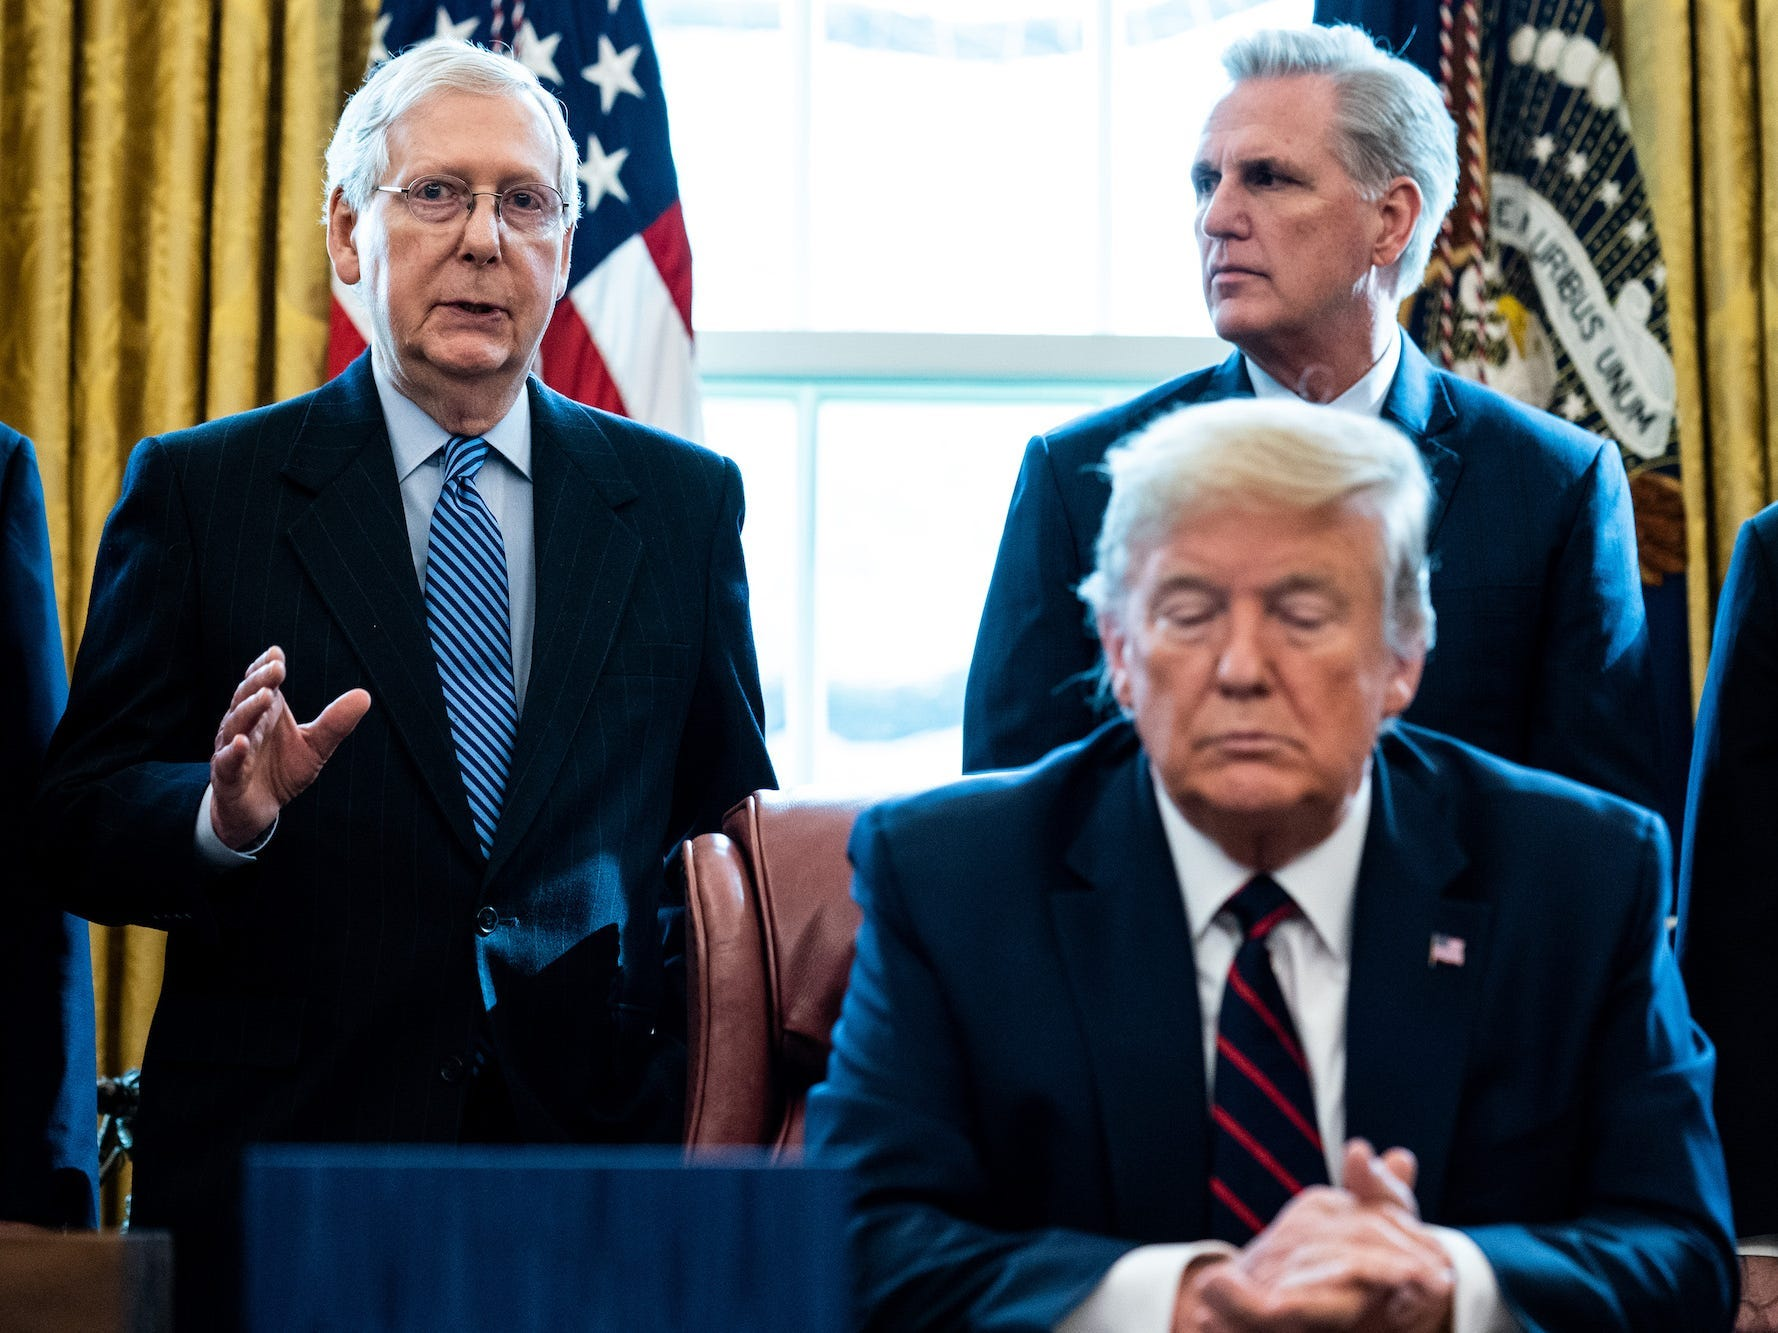 Republican sources yelp McConnell is pondering a vote to convict Trump and expel him from the US government eternally